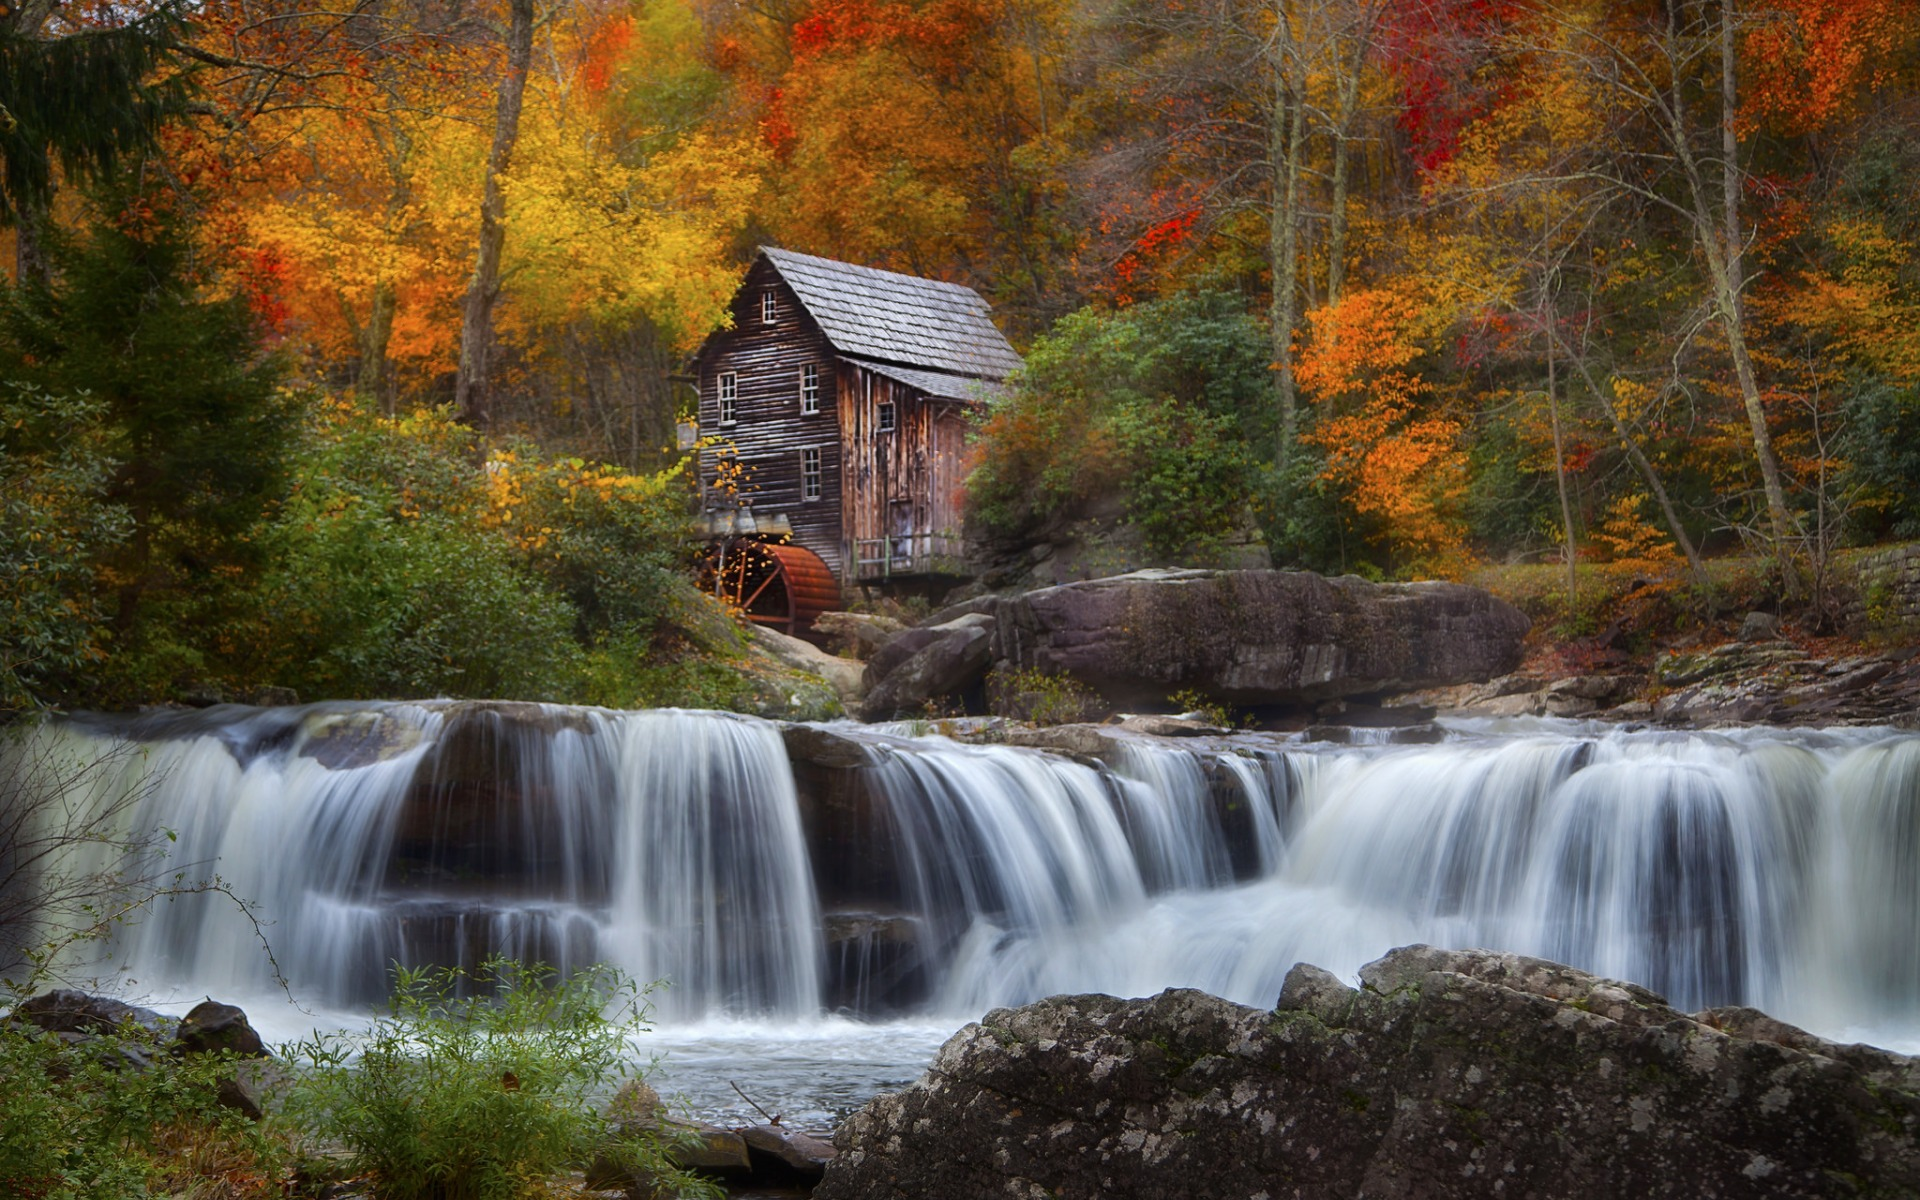 Fall Foliage Wallpaper For Iphone Old Mill And Waterfall In Autumn Hd Wallpaper Background